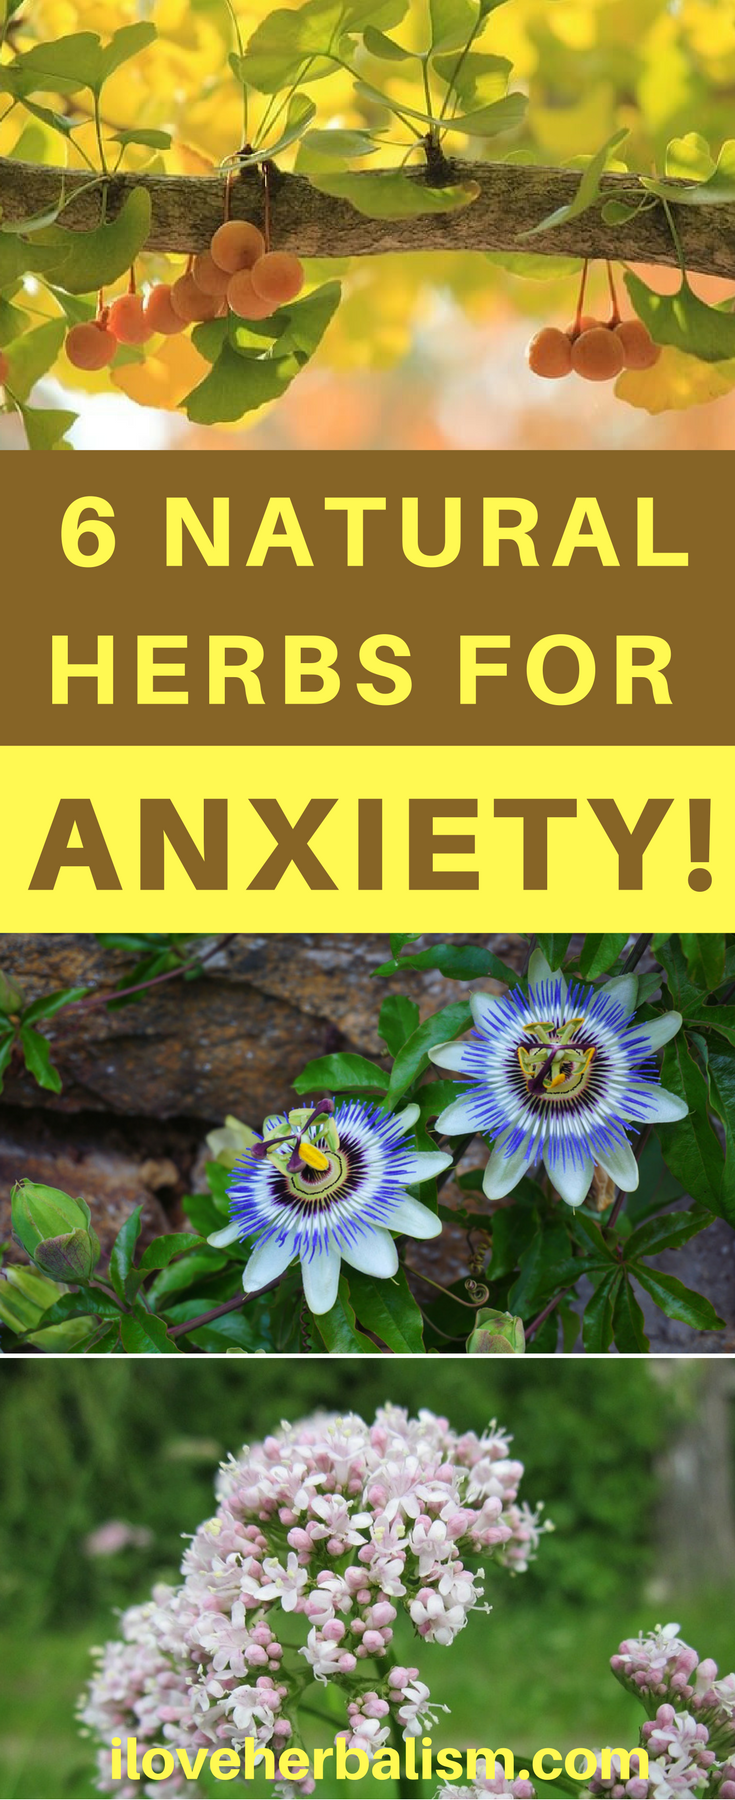 video] simple yet effective remedies for anxiety | ☆ herbal